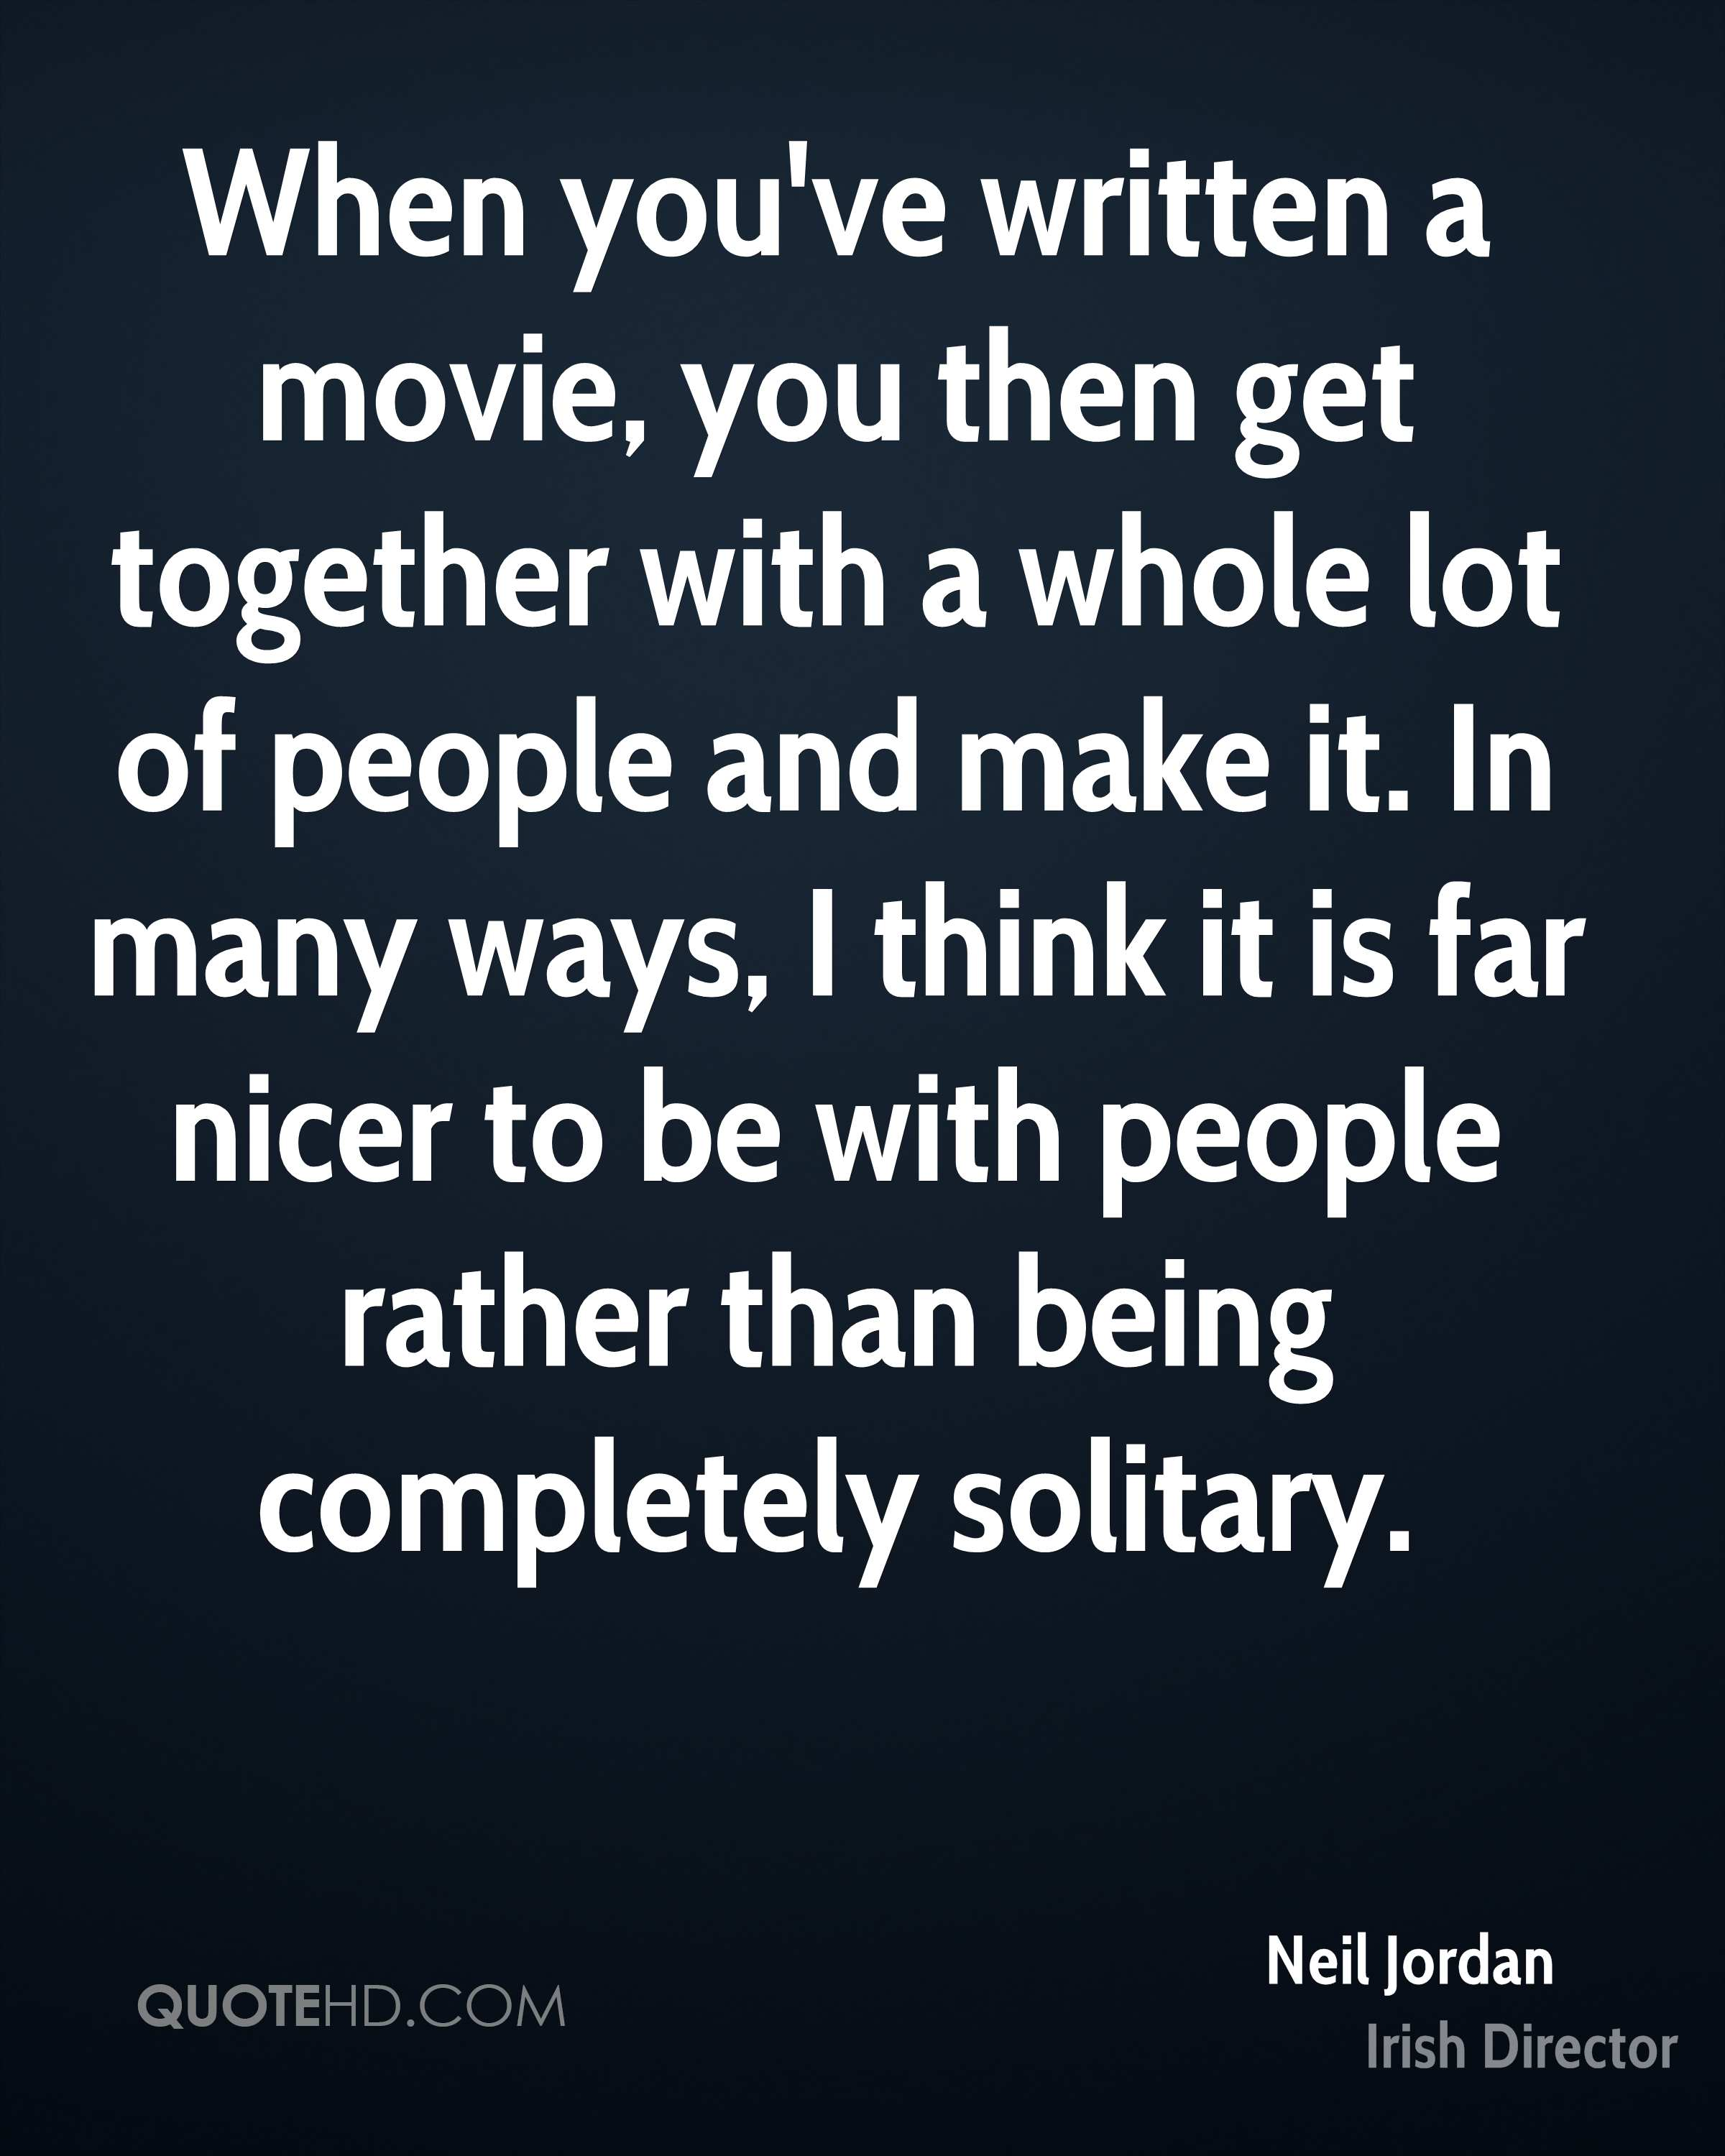 When you've written a movie, you then get together with a whole lot of people and make it. In many ways, I think it is far nicer to be with people rather than being completely solitary.